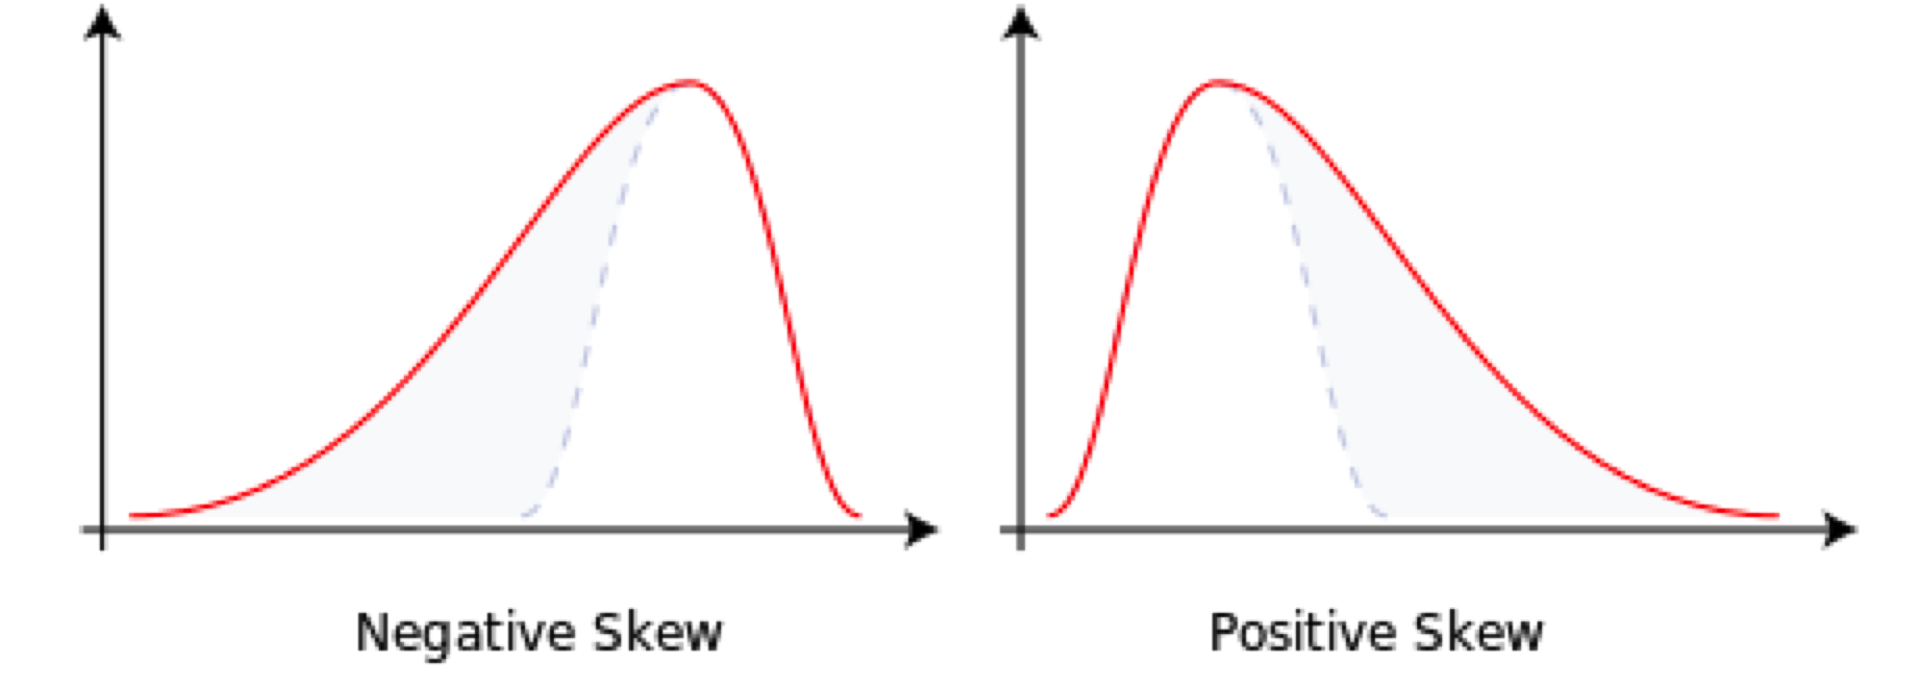 Binary options skew